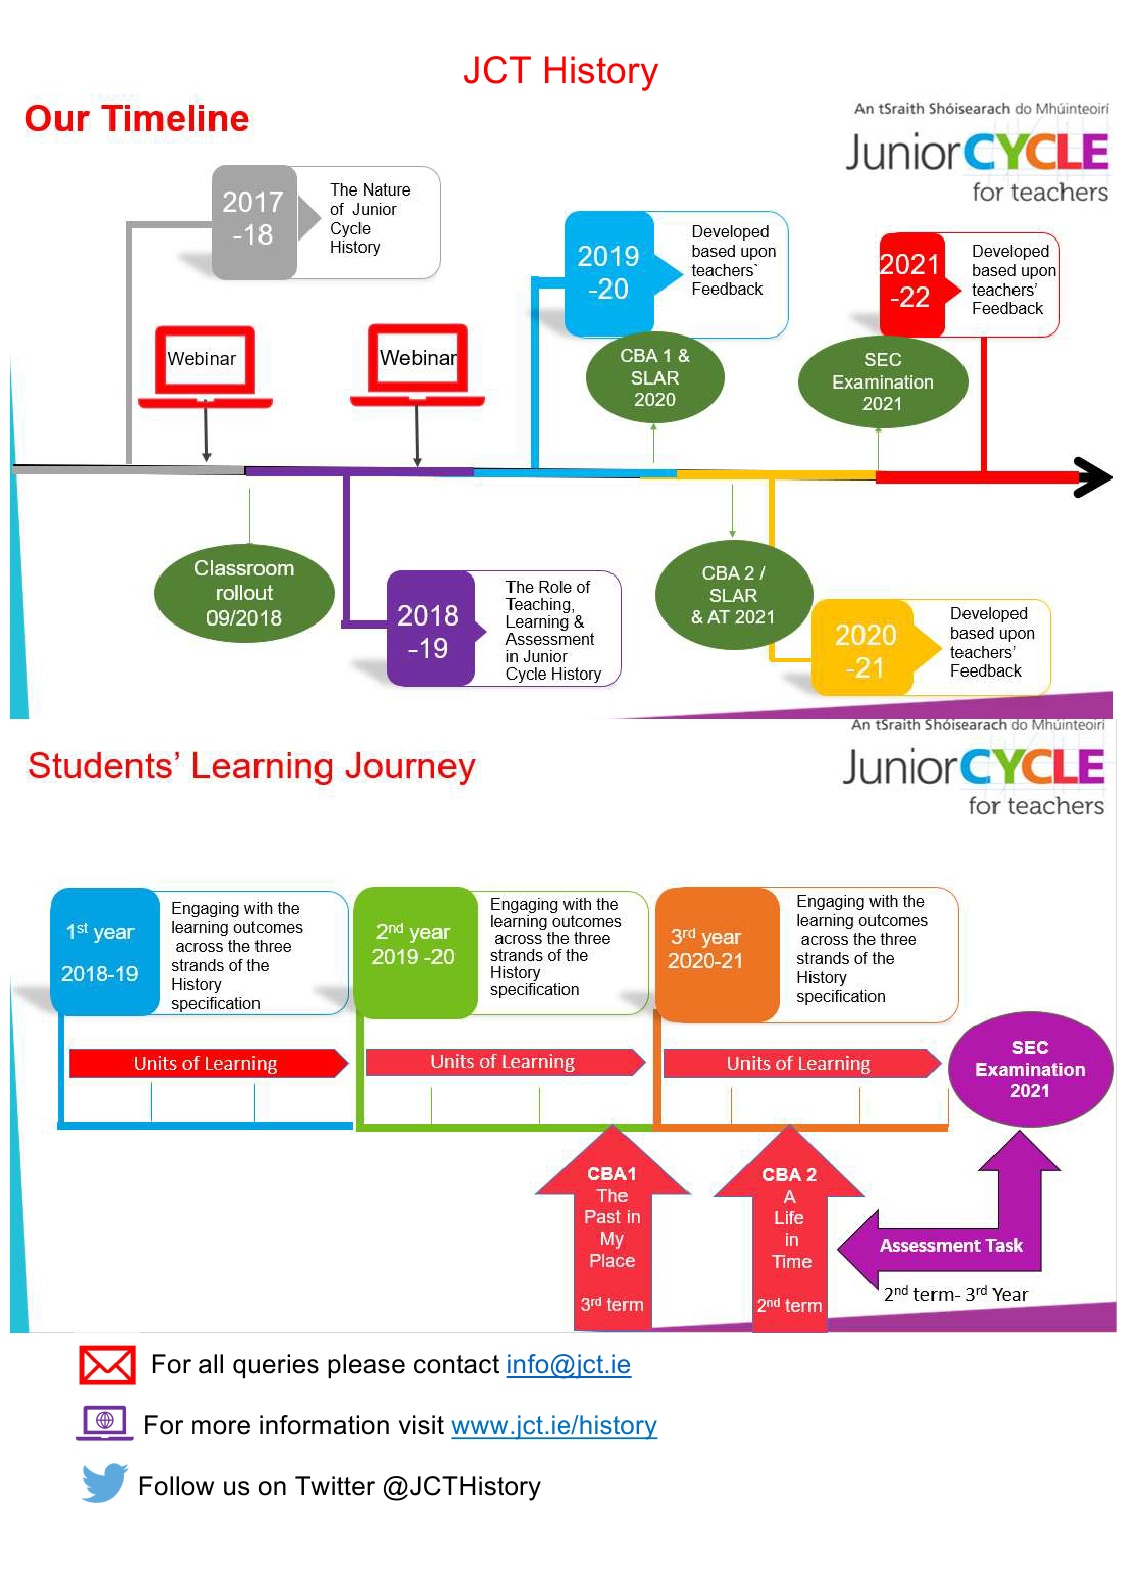 Teaching and Learning Timeline